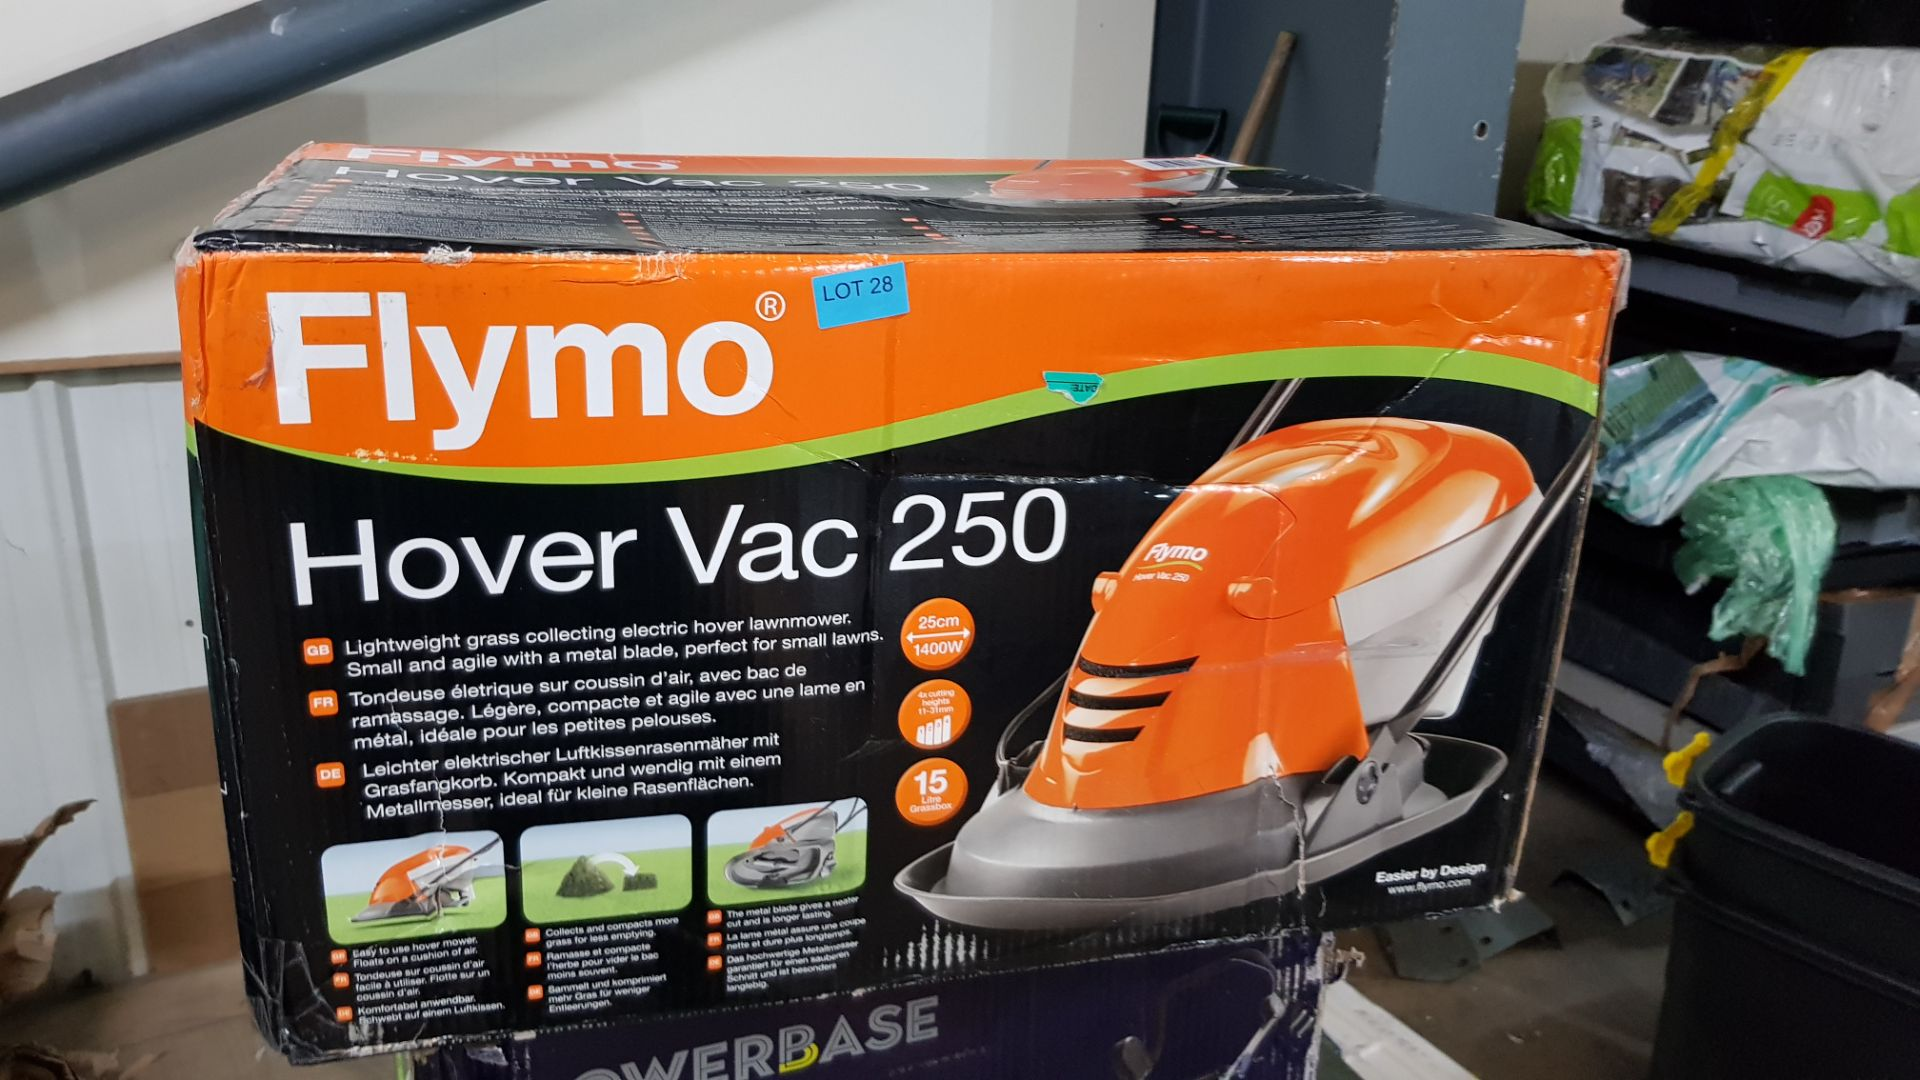 (P10) 1x Flymo Hover Vac 250 RRP £80. New, Sealed Item With Some Box Damage. - Image 3 of 4